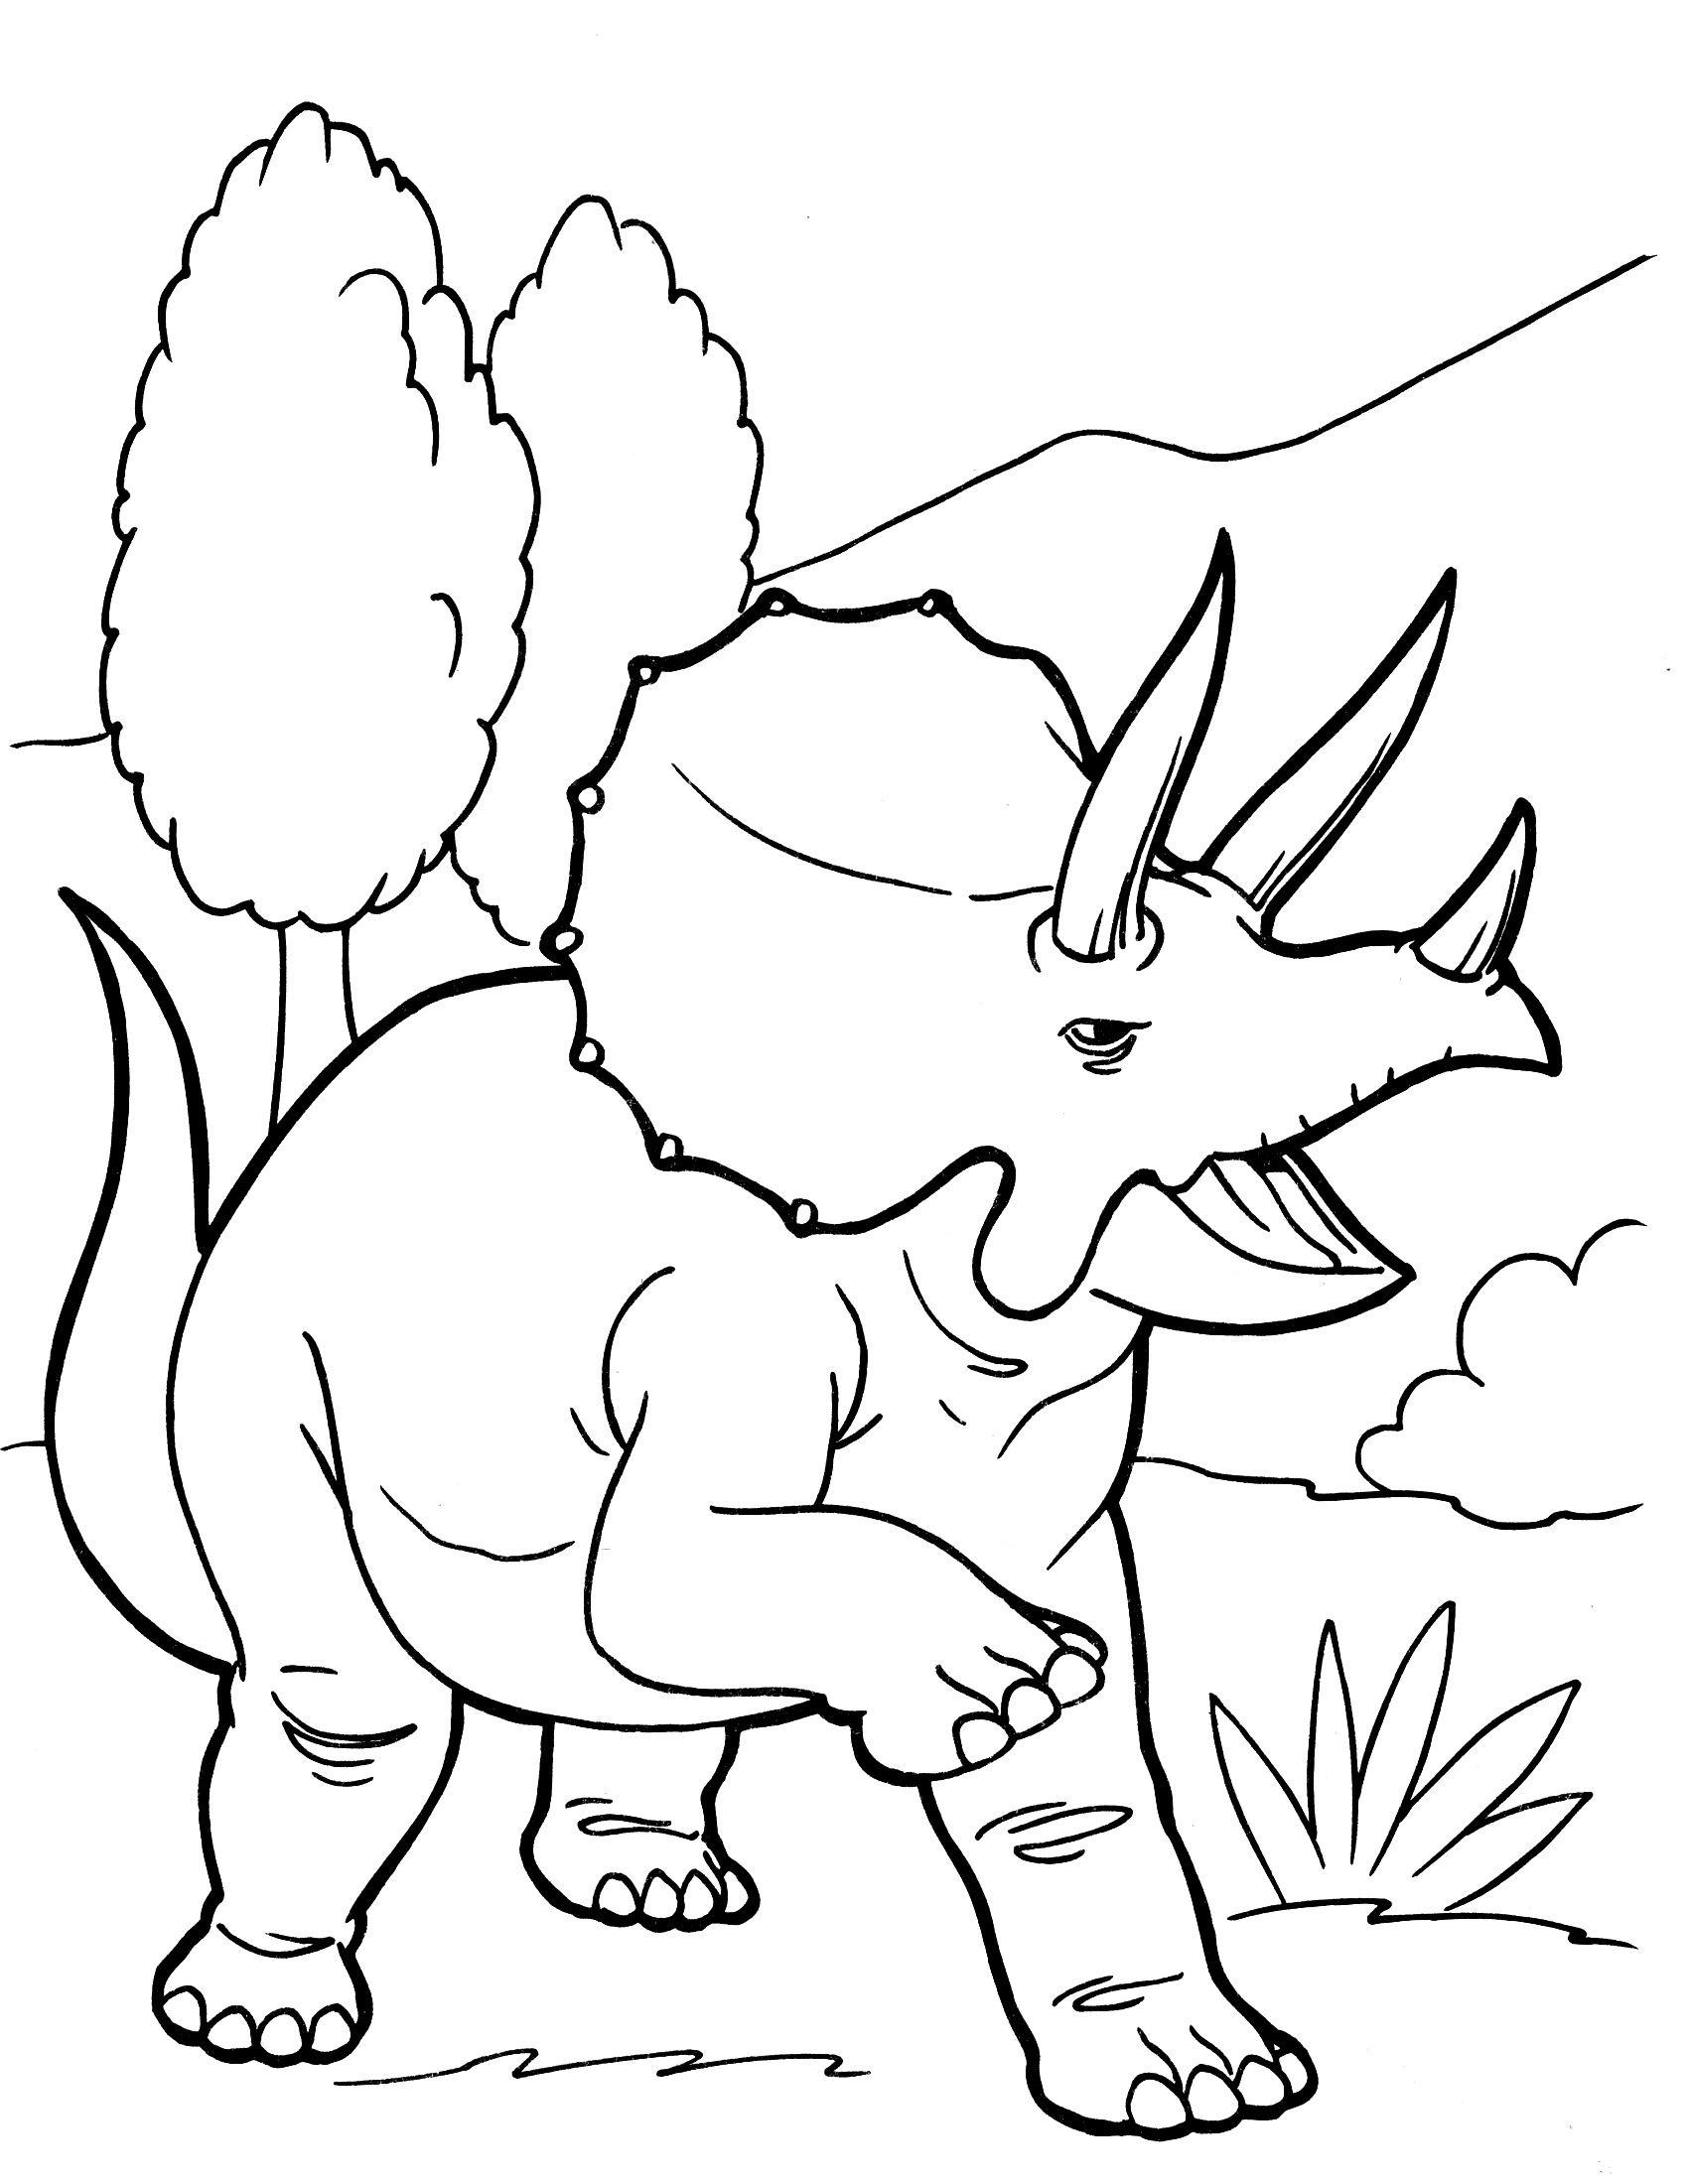 Apatosaurus coloring pages, dinosaurs coloring pages